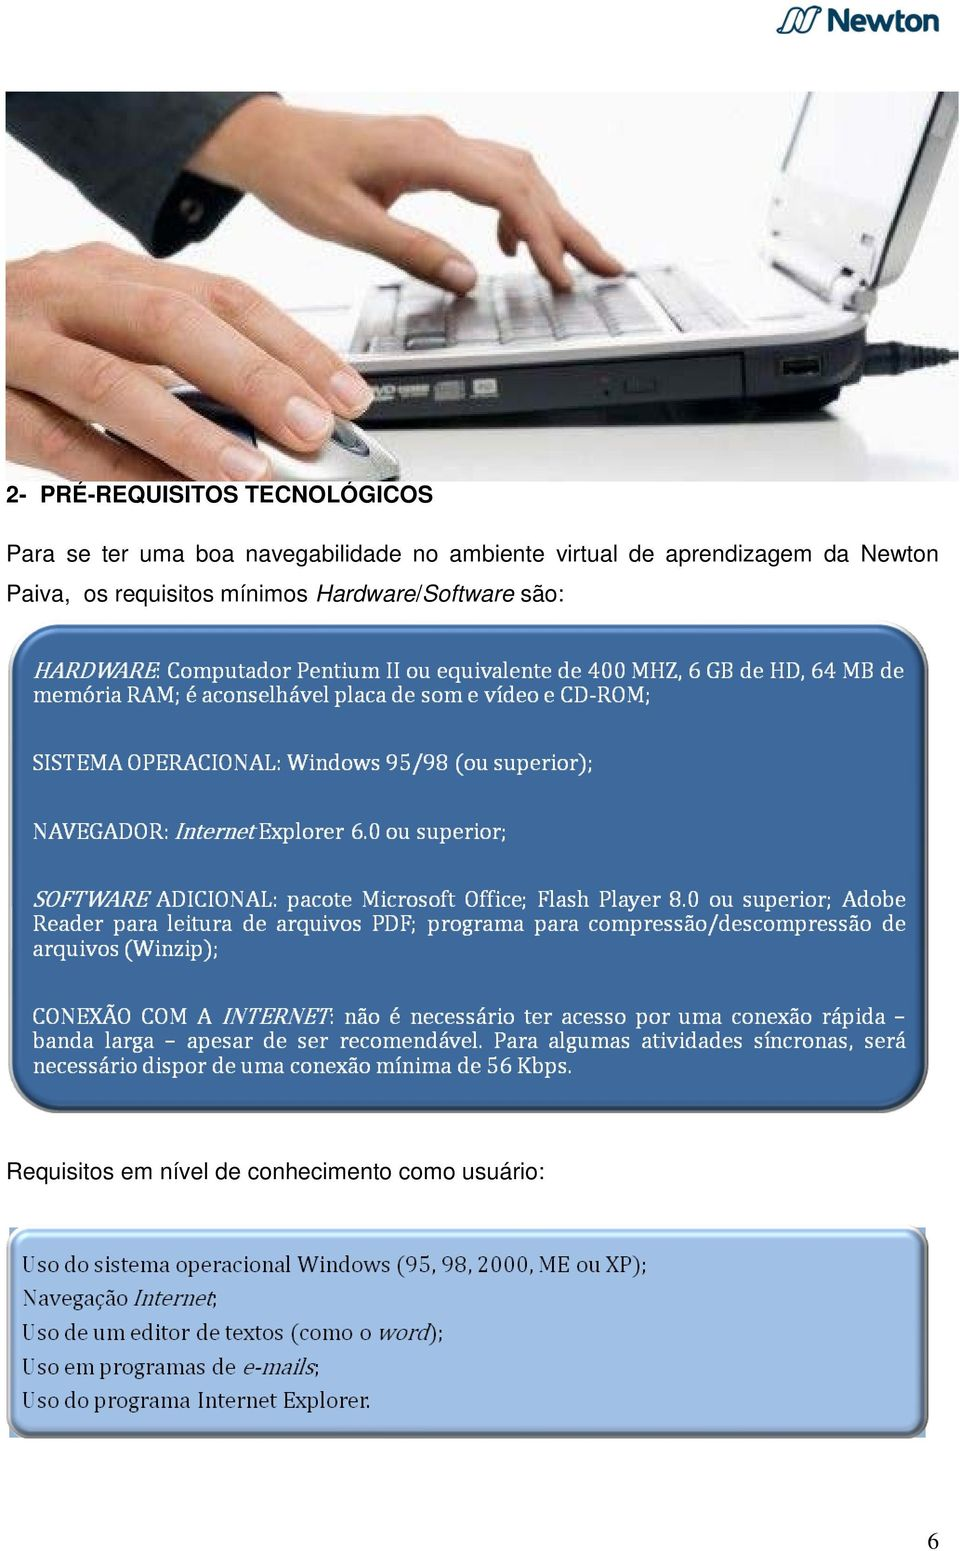 Newton Paiva, os requisitos mínimos Hardware/Software